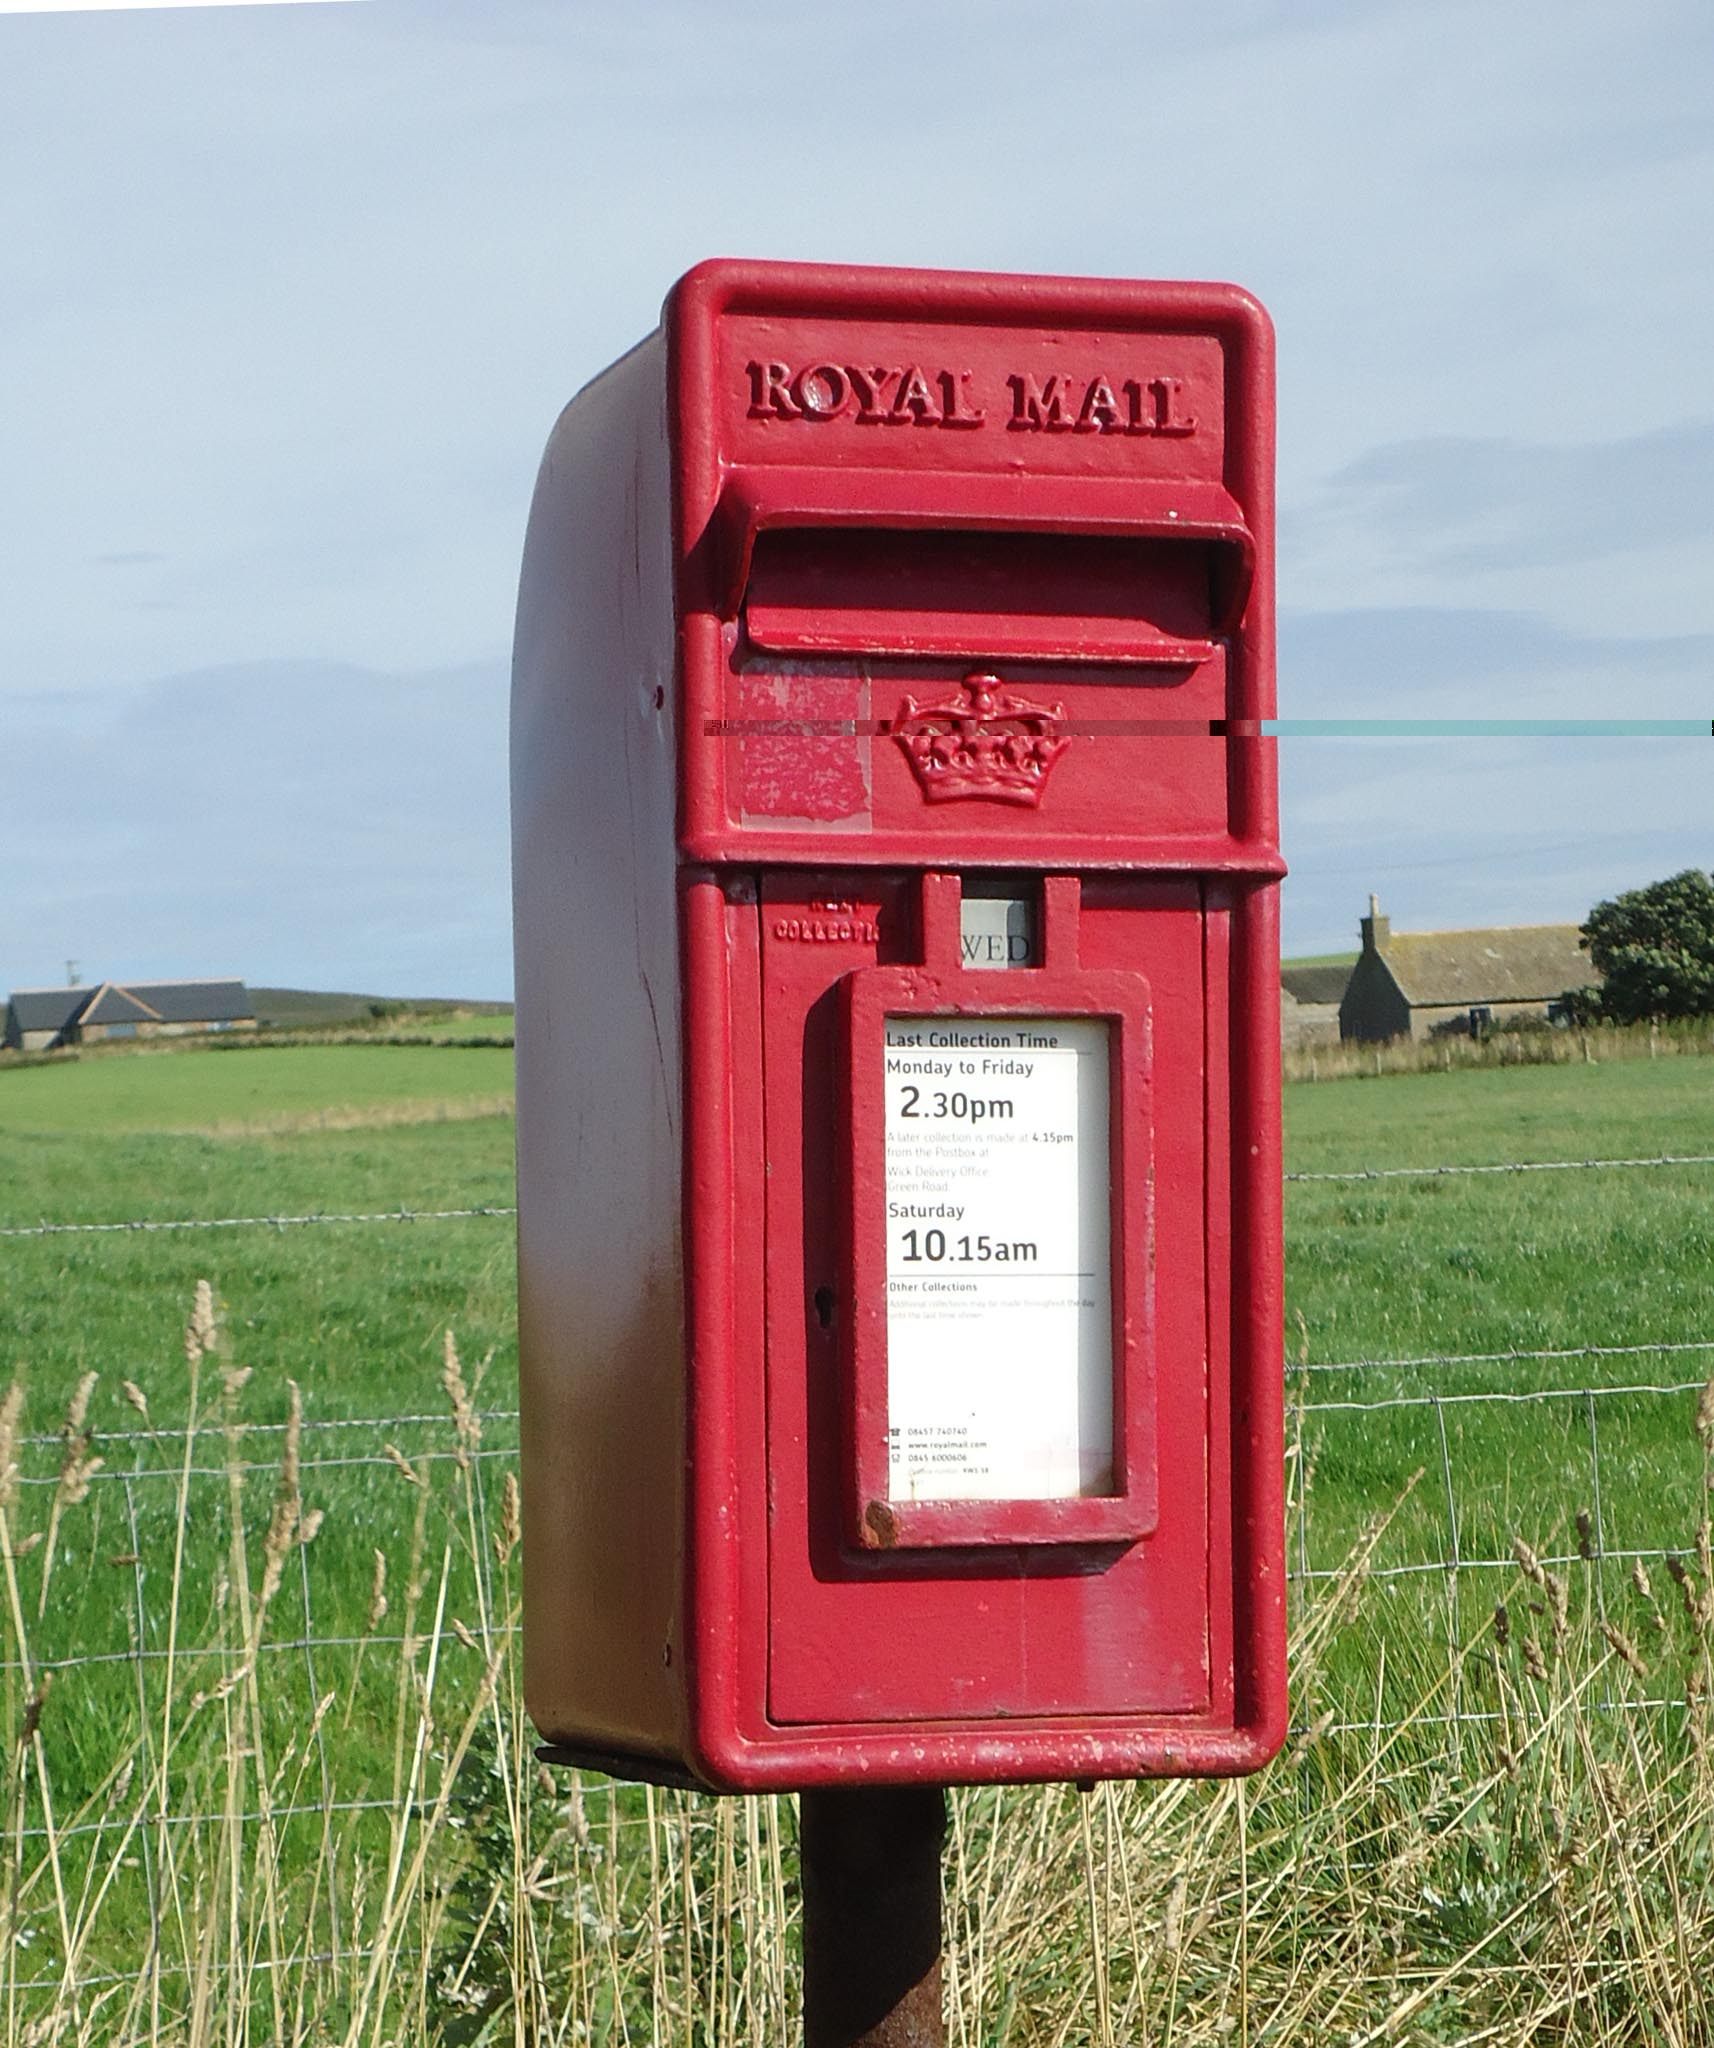 ER/Scottish Crown lamp box, 2000s, North Scotland. Bob Drummond